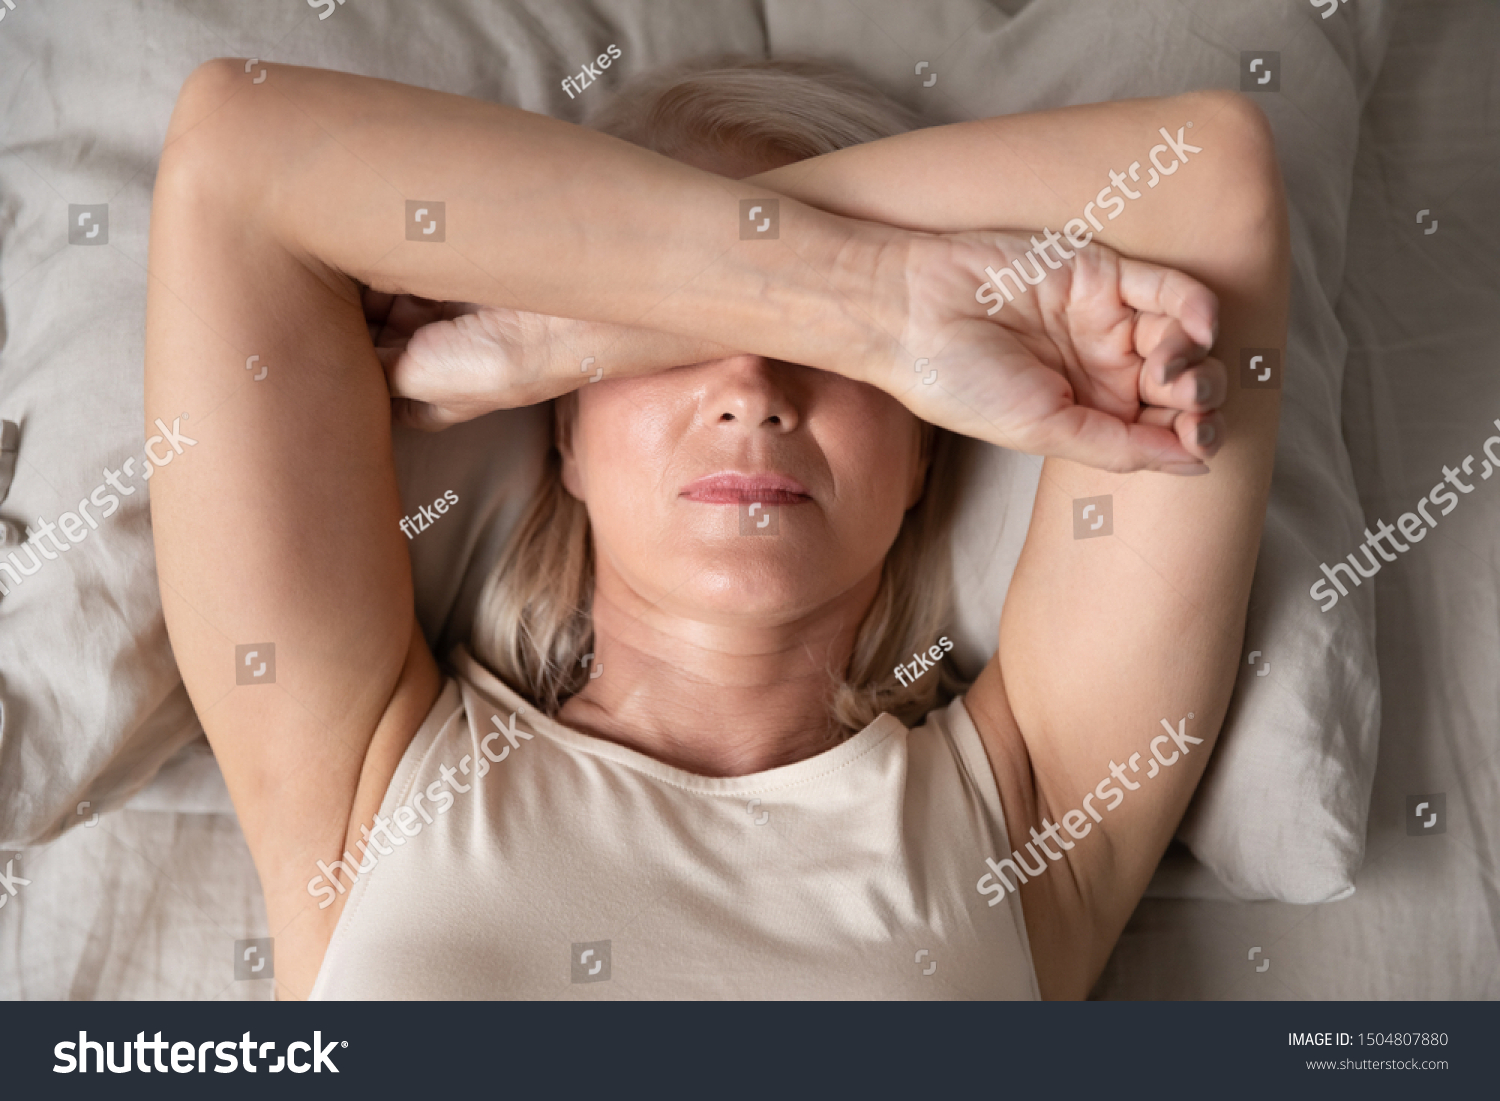 Sleepless mature woman suffering from insomnia close up, lying in bed, older female covering eyes with hands, trying to sleep, nightmares or depression, feeling headache or migraine #1504807880